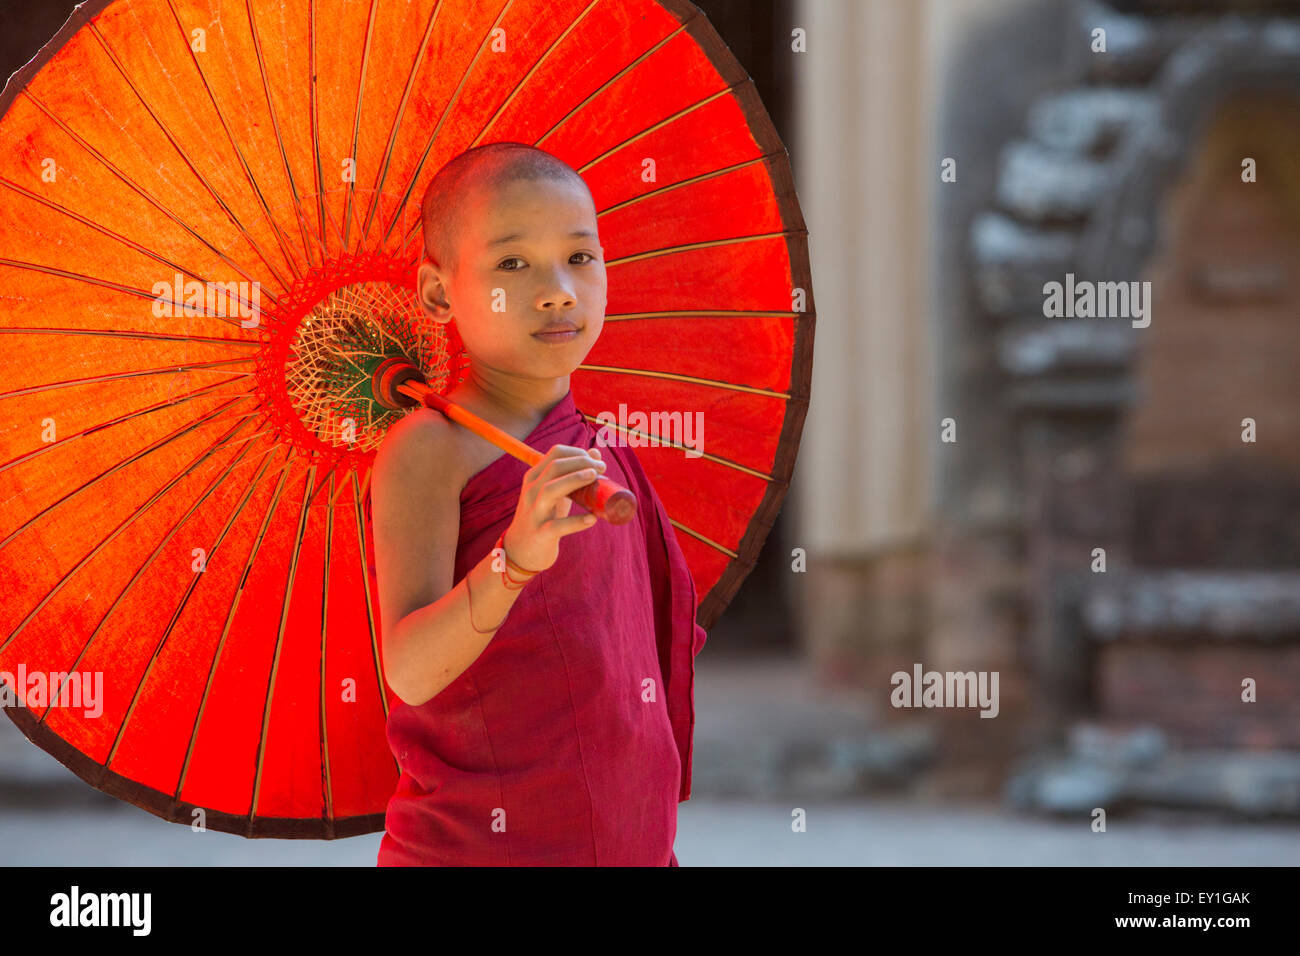 Buddhist novice monk holding umbrella at entrance to Sulamani Temple, Myanmar Stock Photo